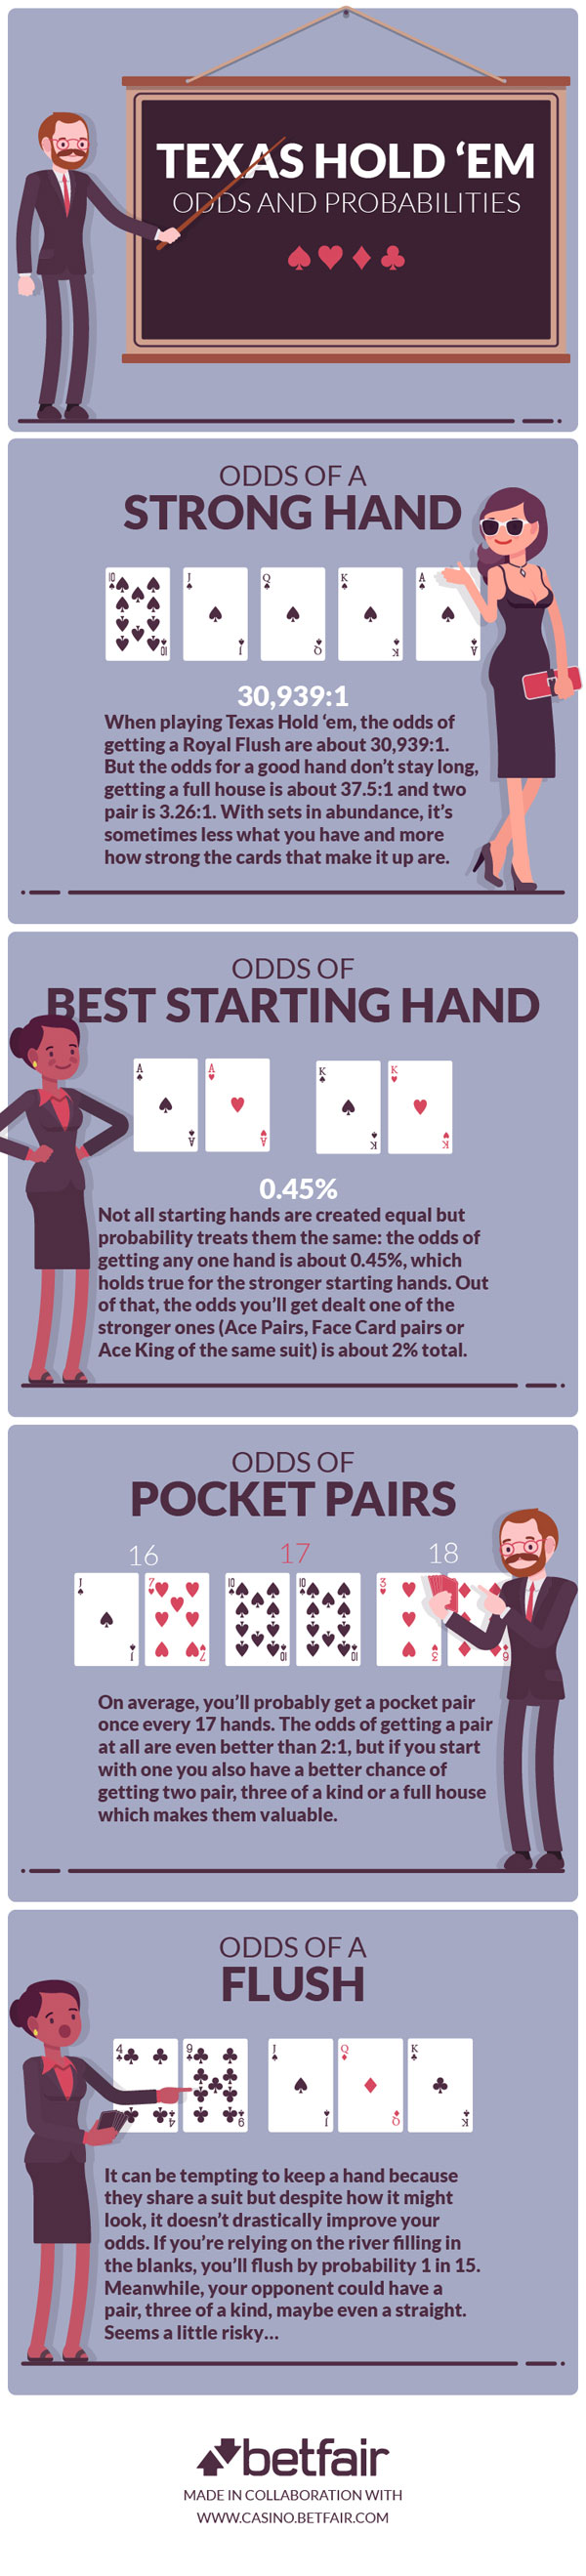 Texas Hold'em Odds and Probability